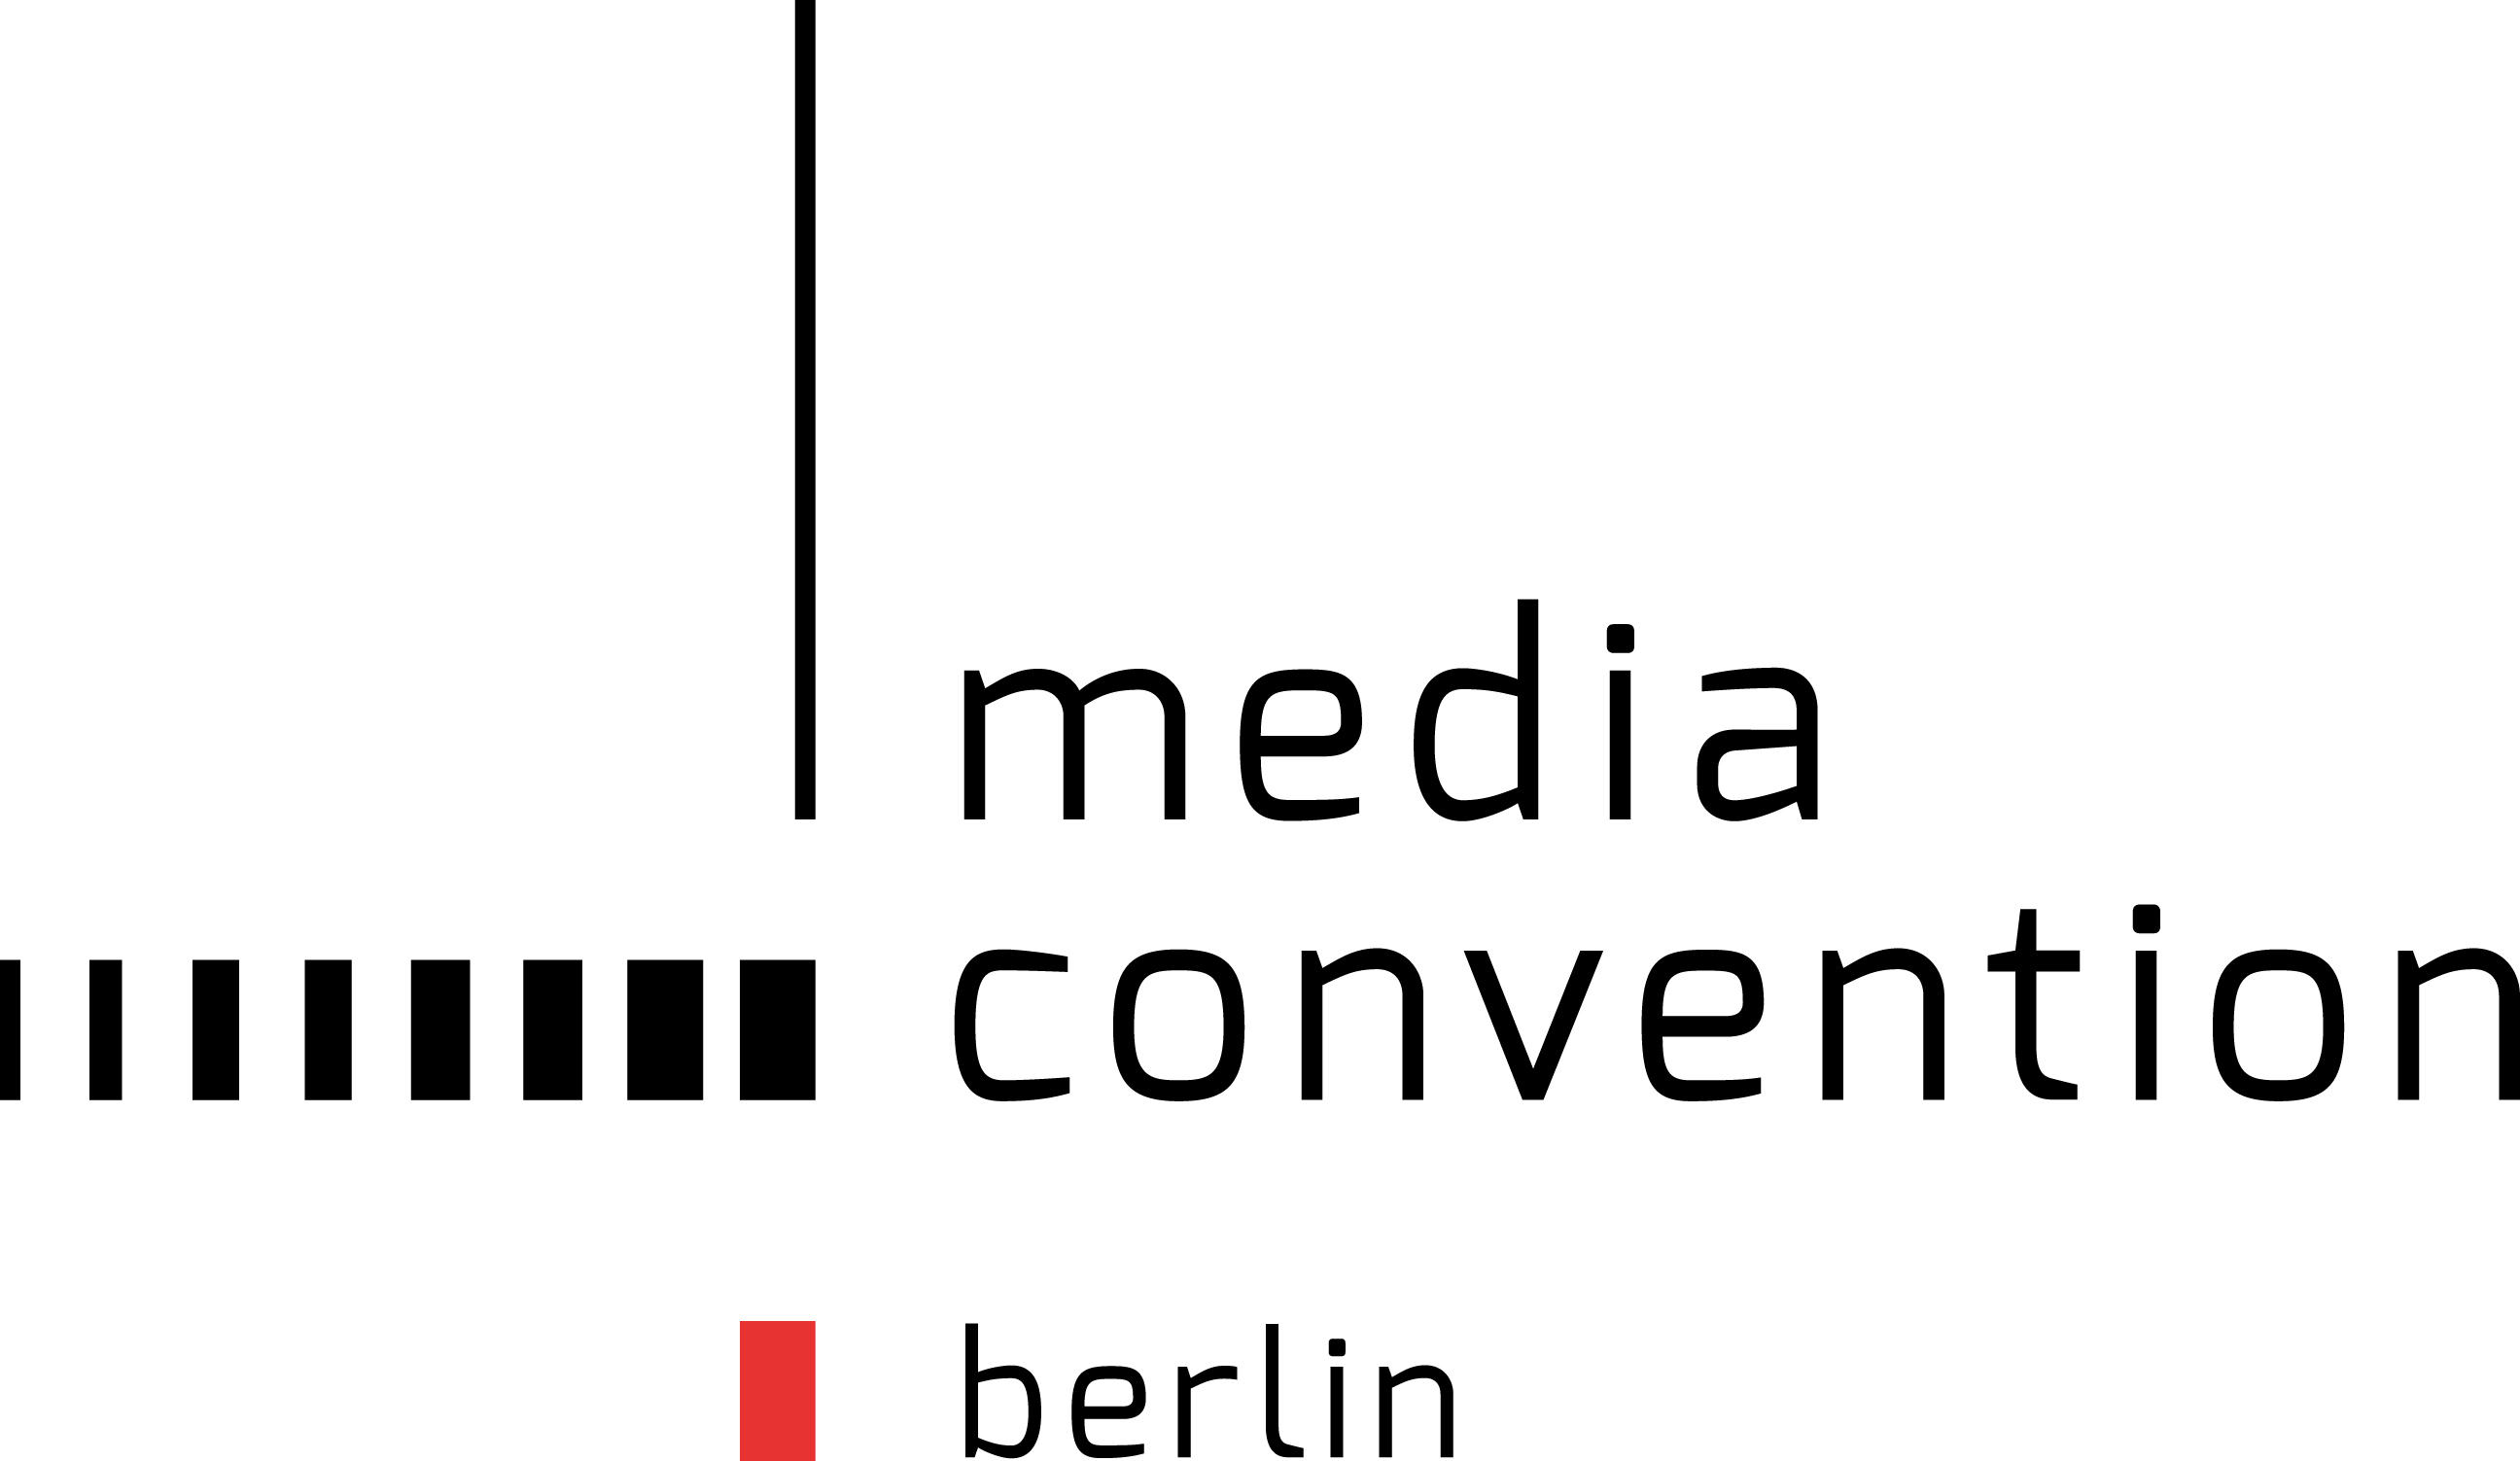 Media Convention Berlin